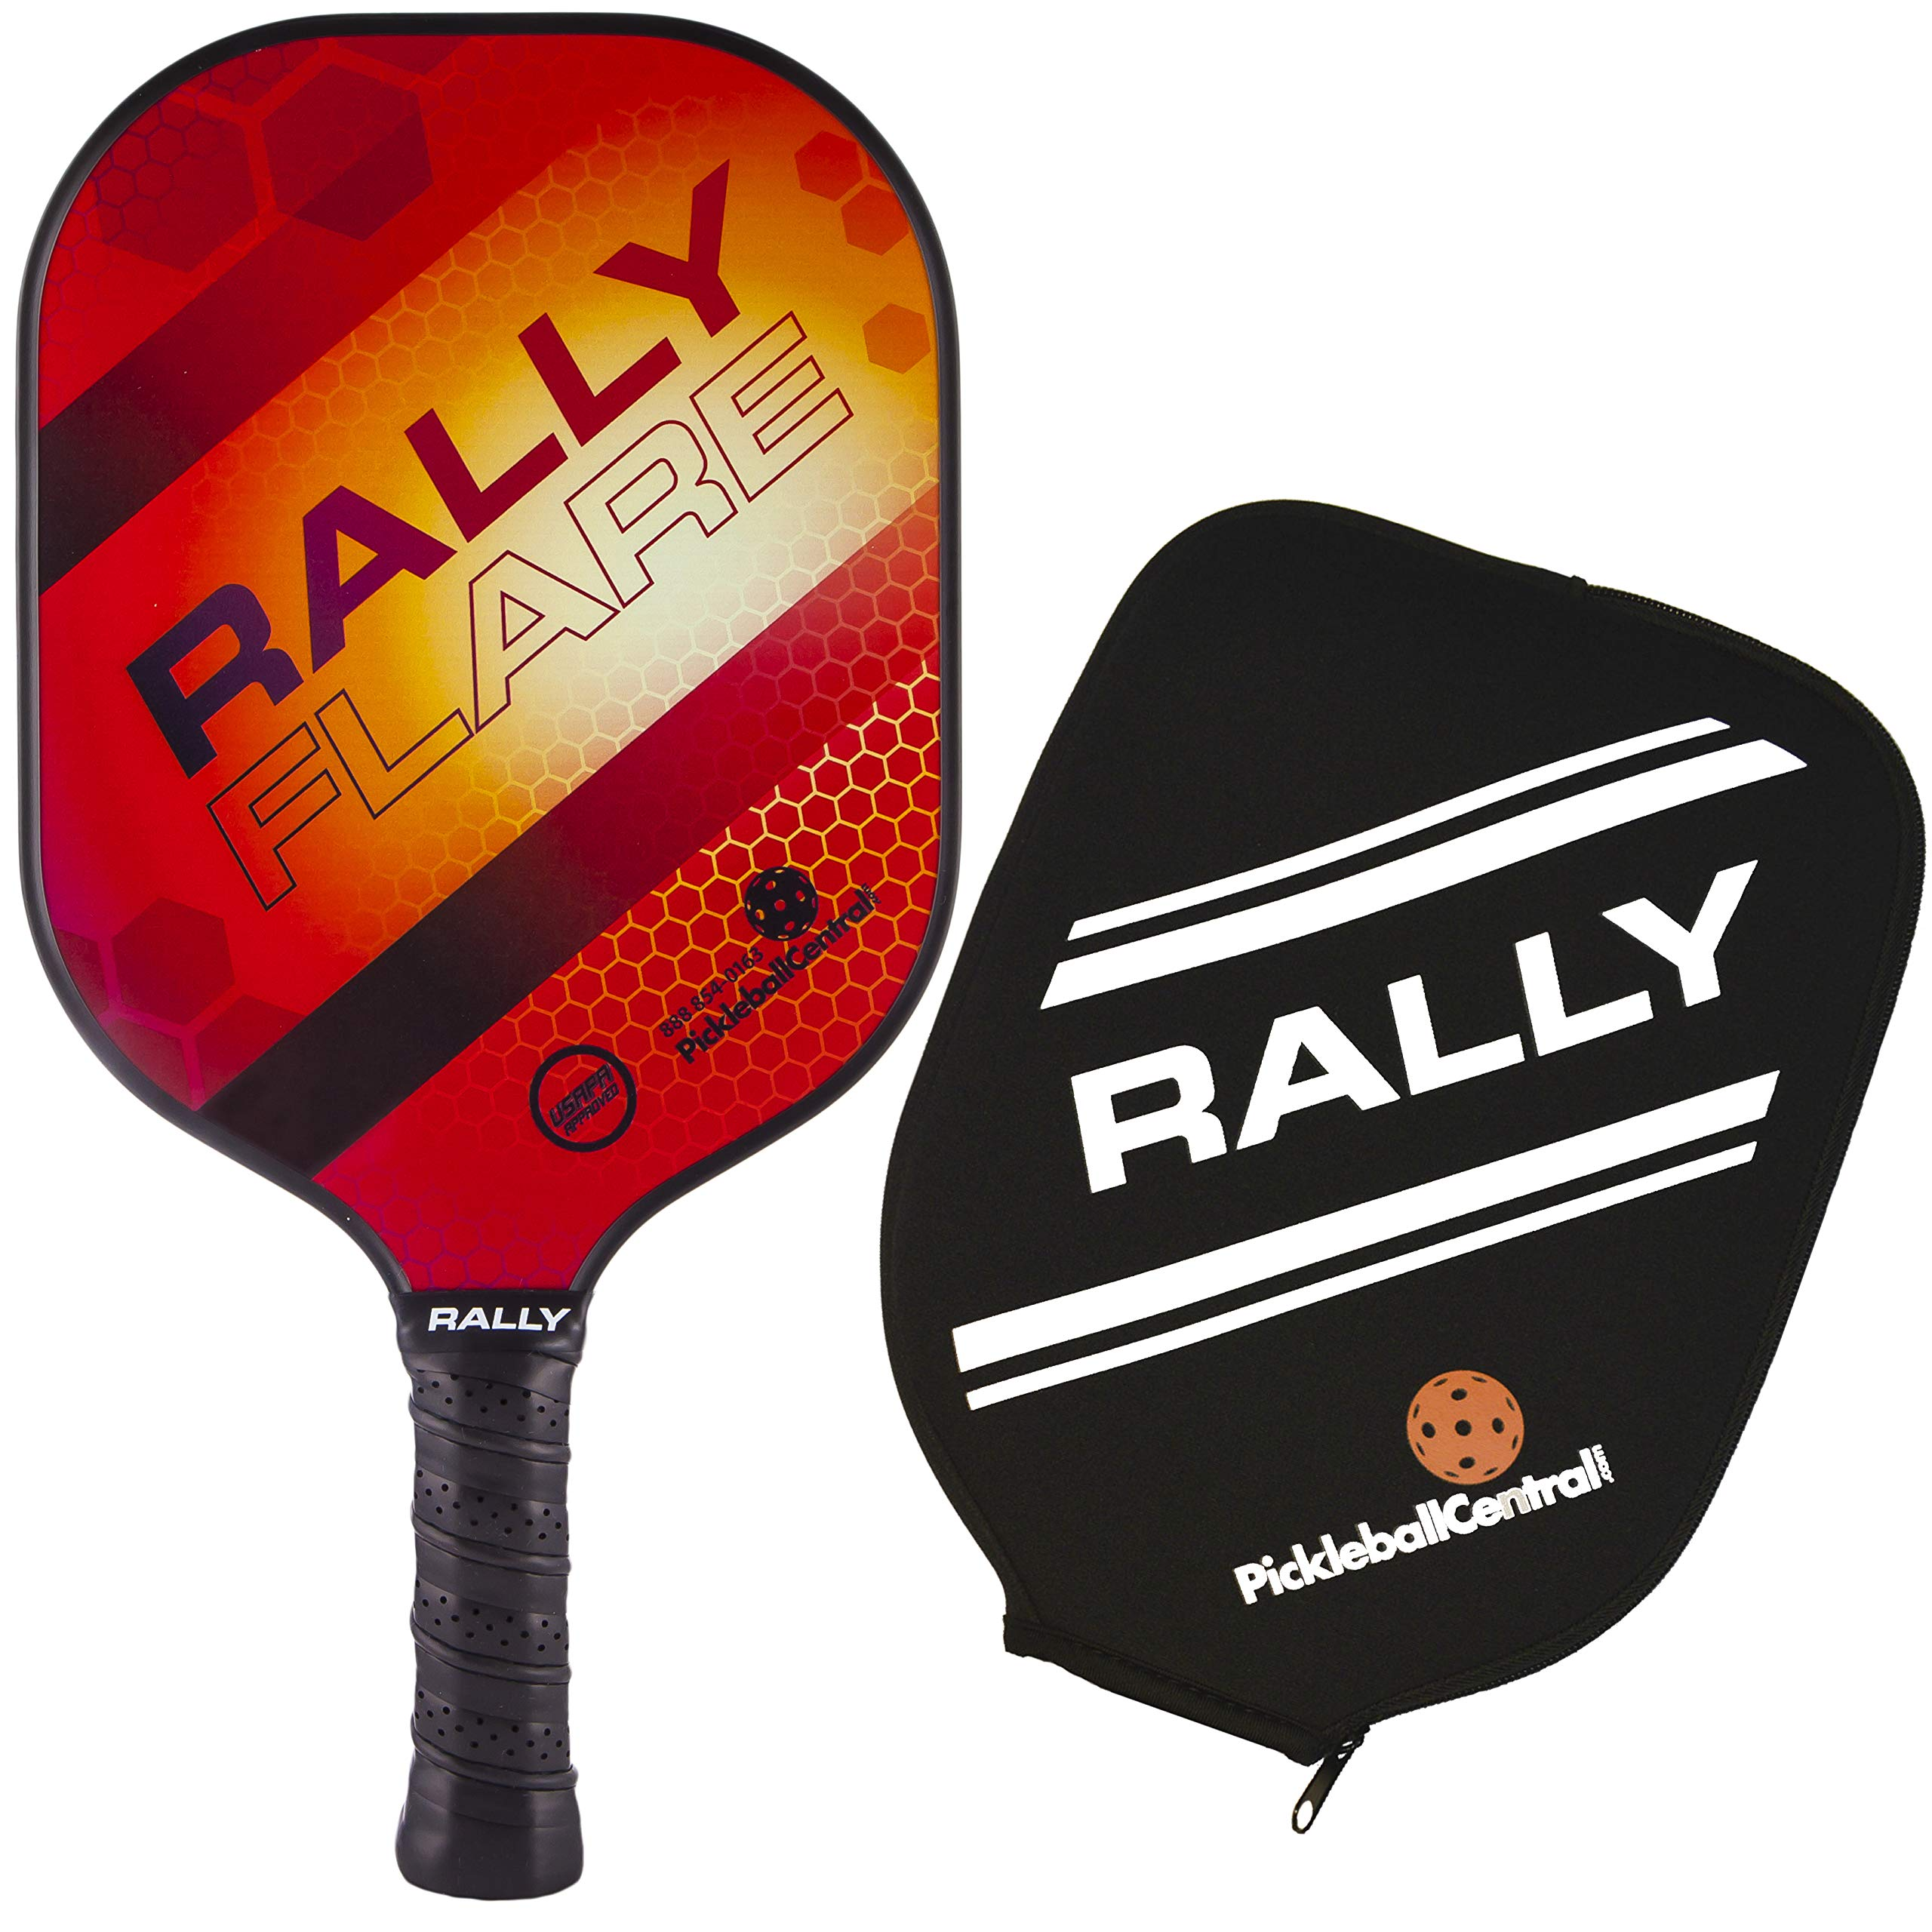 Rally Flare Graphite Pickleball Paddle - Red | Polymer Honeycomb Core, Graphite Face | Lightweight Control, Power, Spin | Paddle Cover Included in Bundle | USAPA Approved by PickleballCentral